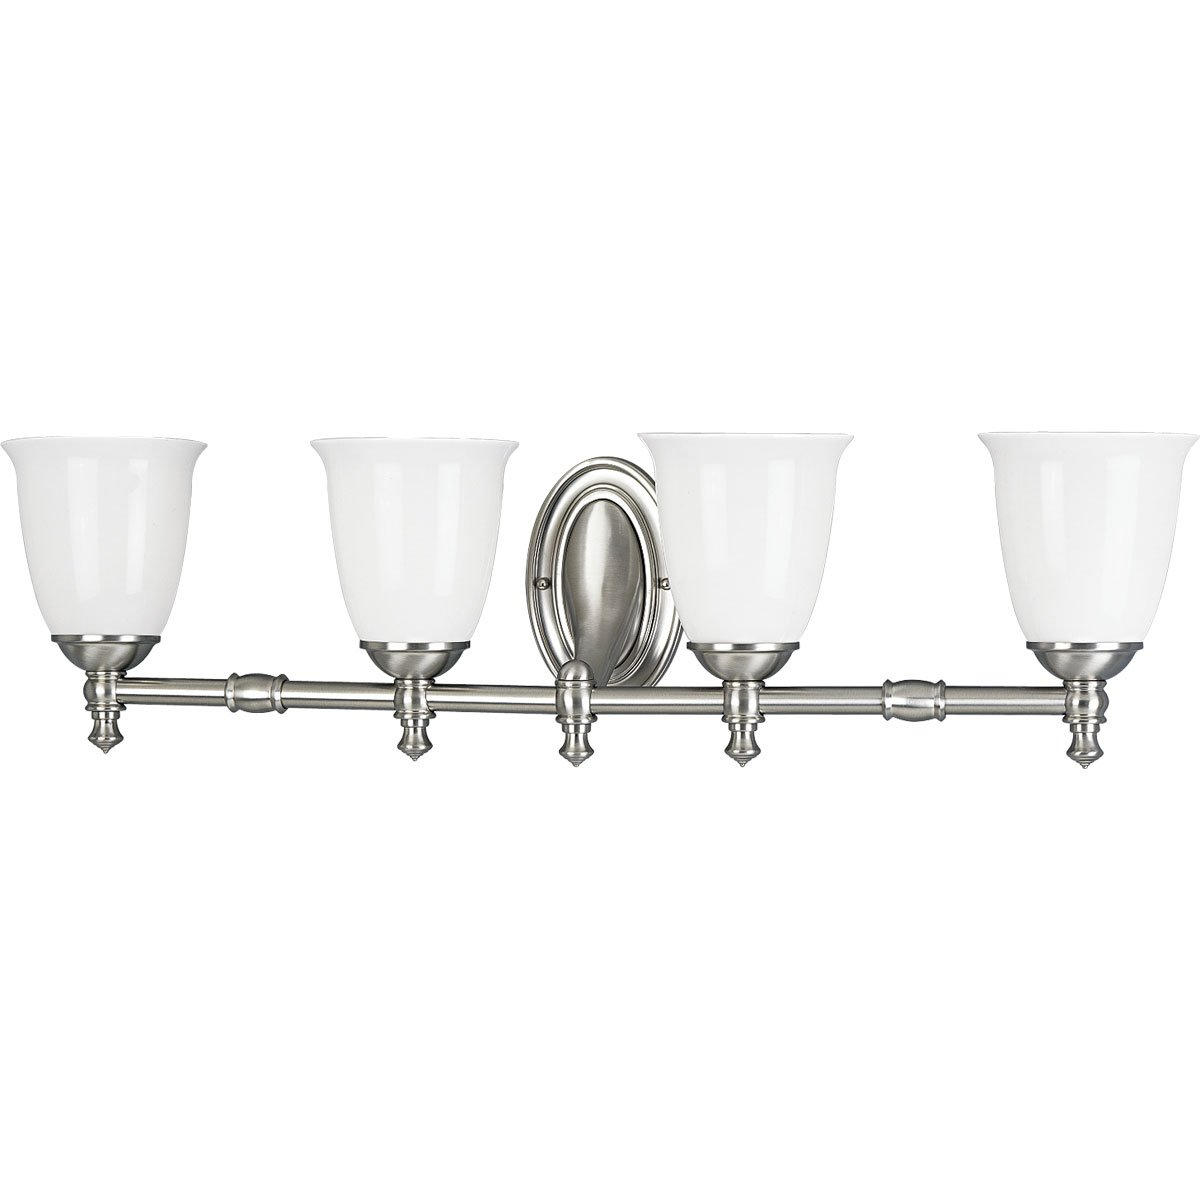 progress lighting p3041 74 4 light victorian bath bracket venetian